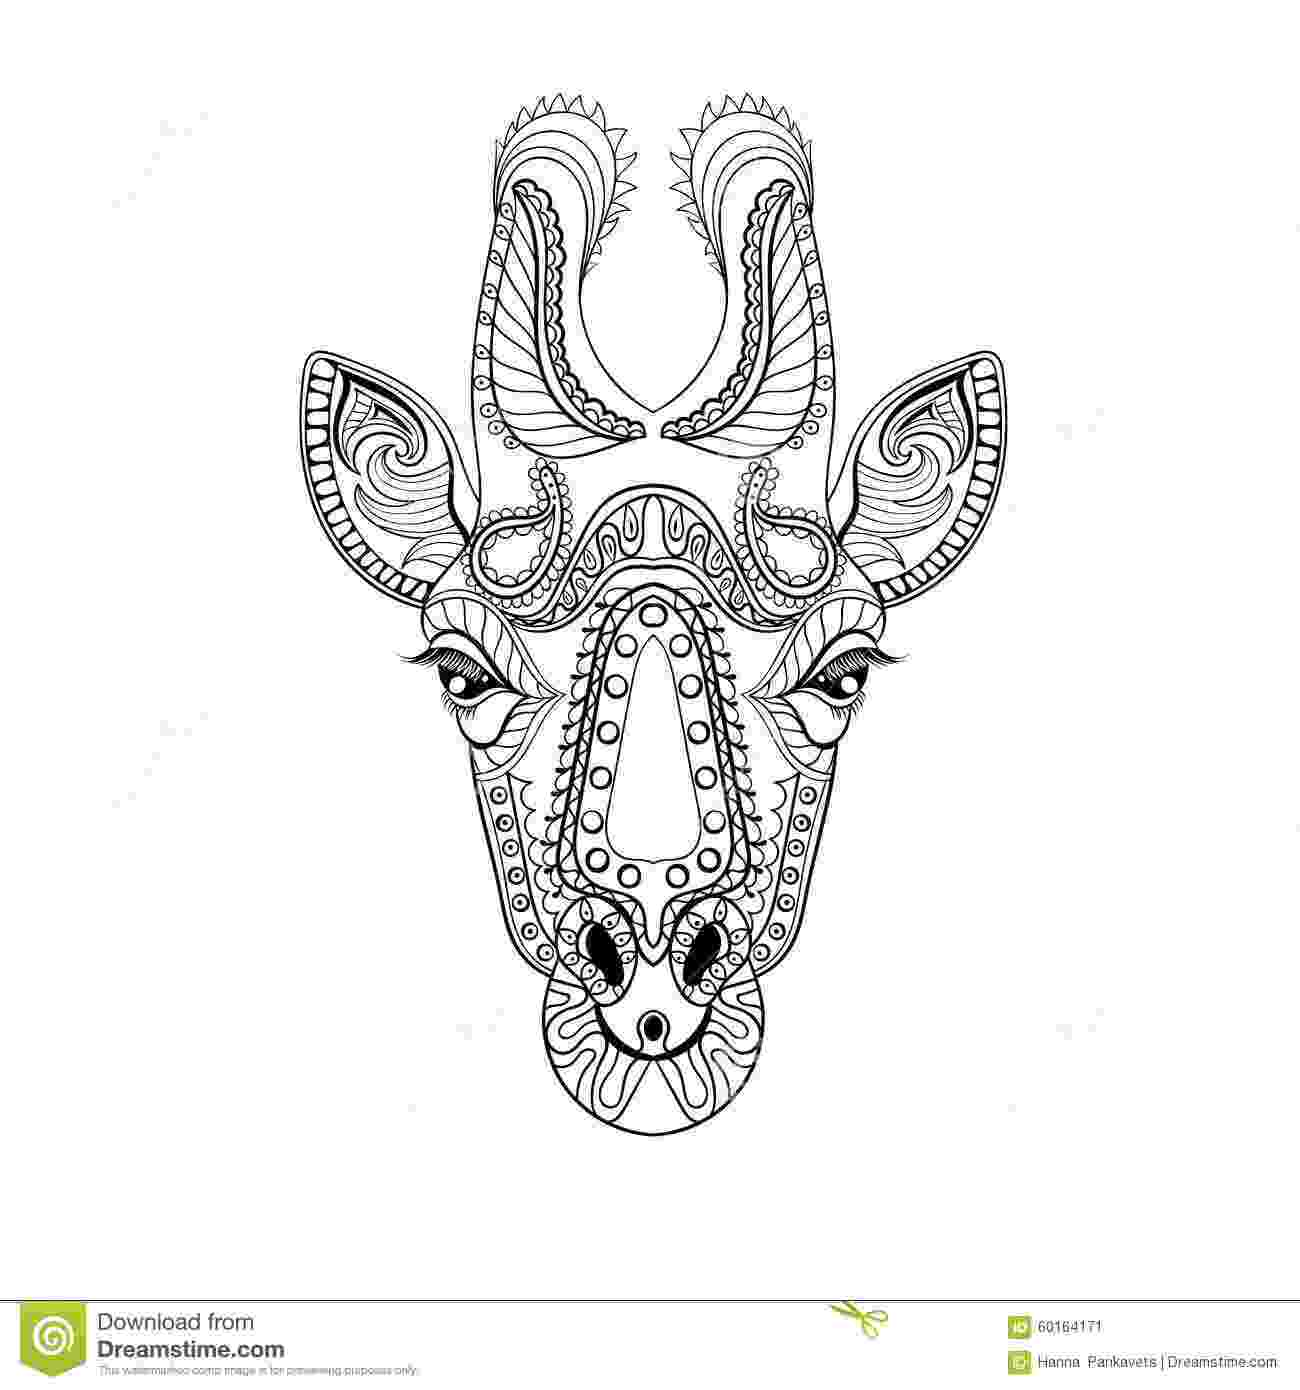 anti stress coloring book animals zentangle giraffe head totem for adult anti stress animals book coloring stress anti